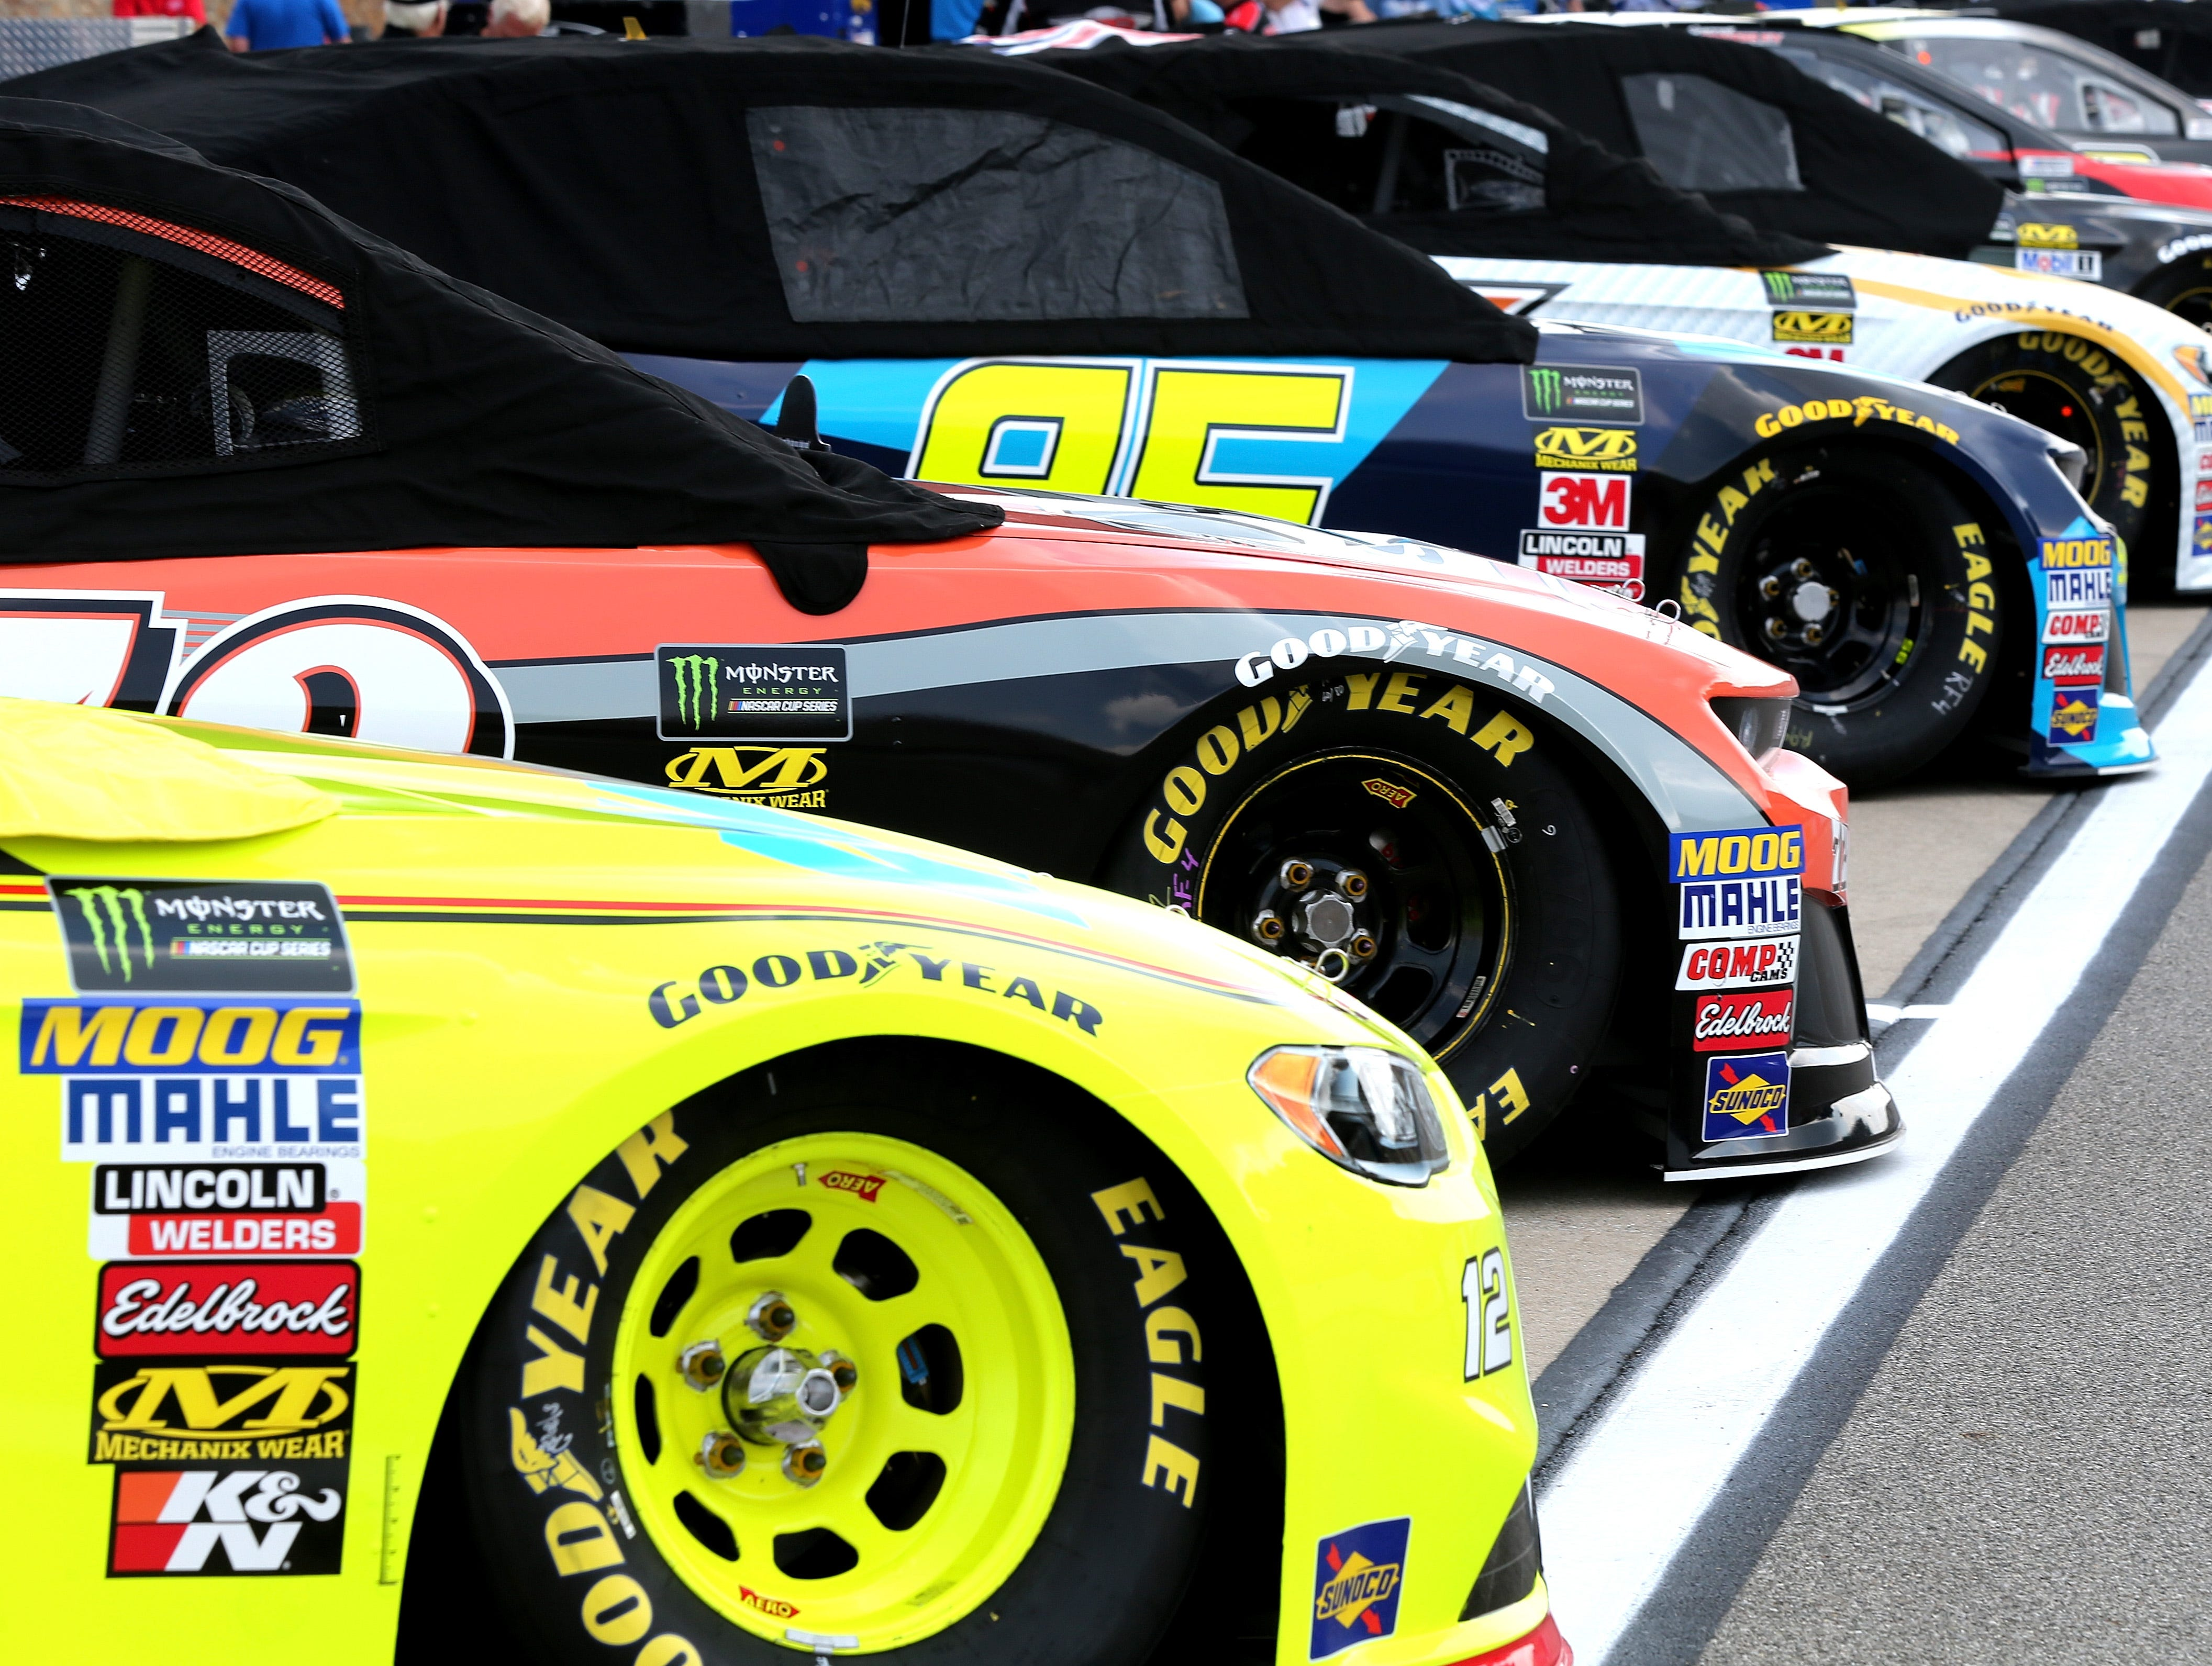 Cars sit on pit road during qualifying for the Monster Energy NASCAR Cup Series Consmers Energy 400 at Michigan International Speedway on August 10, 2018 in Brooklyn, Michigan.